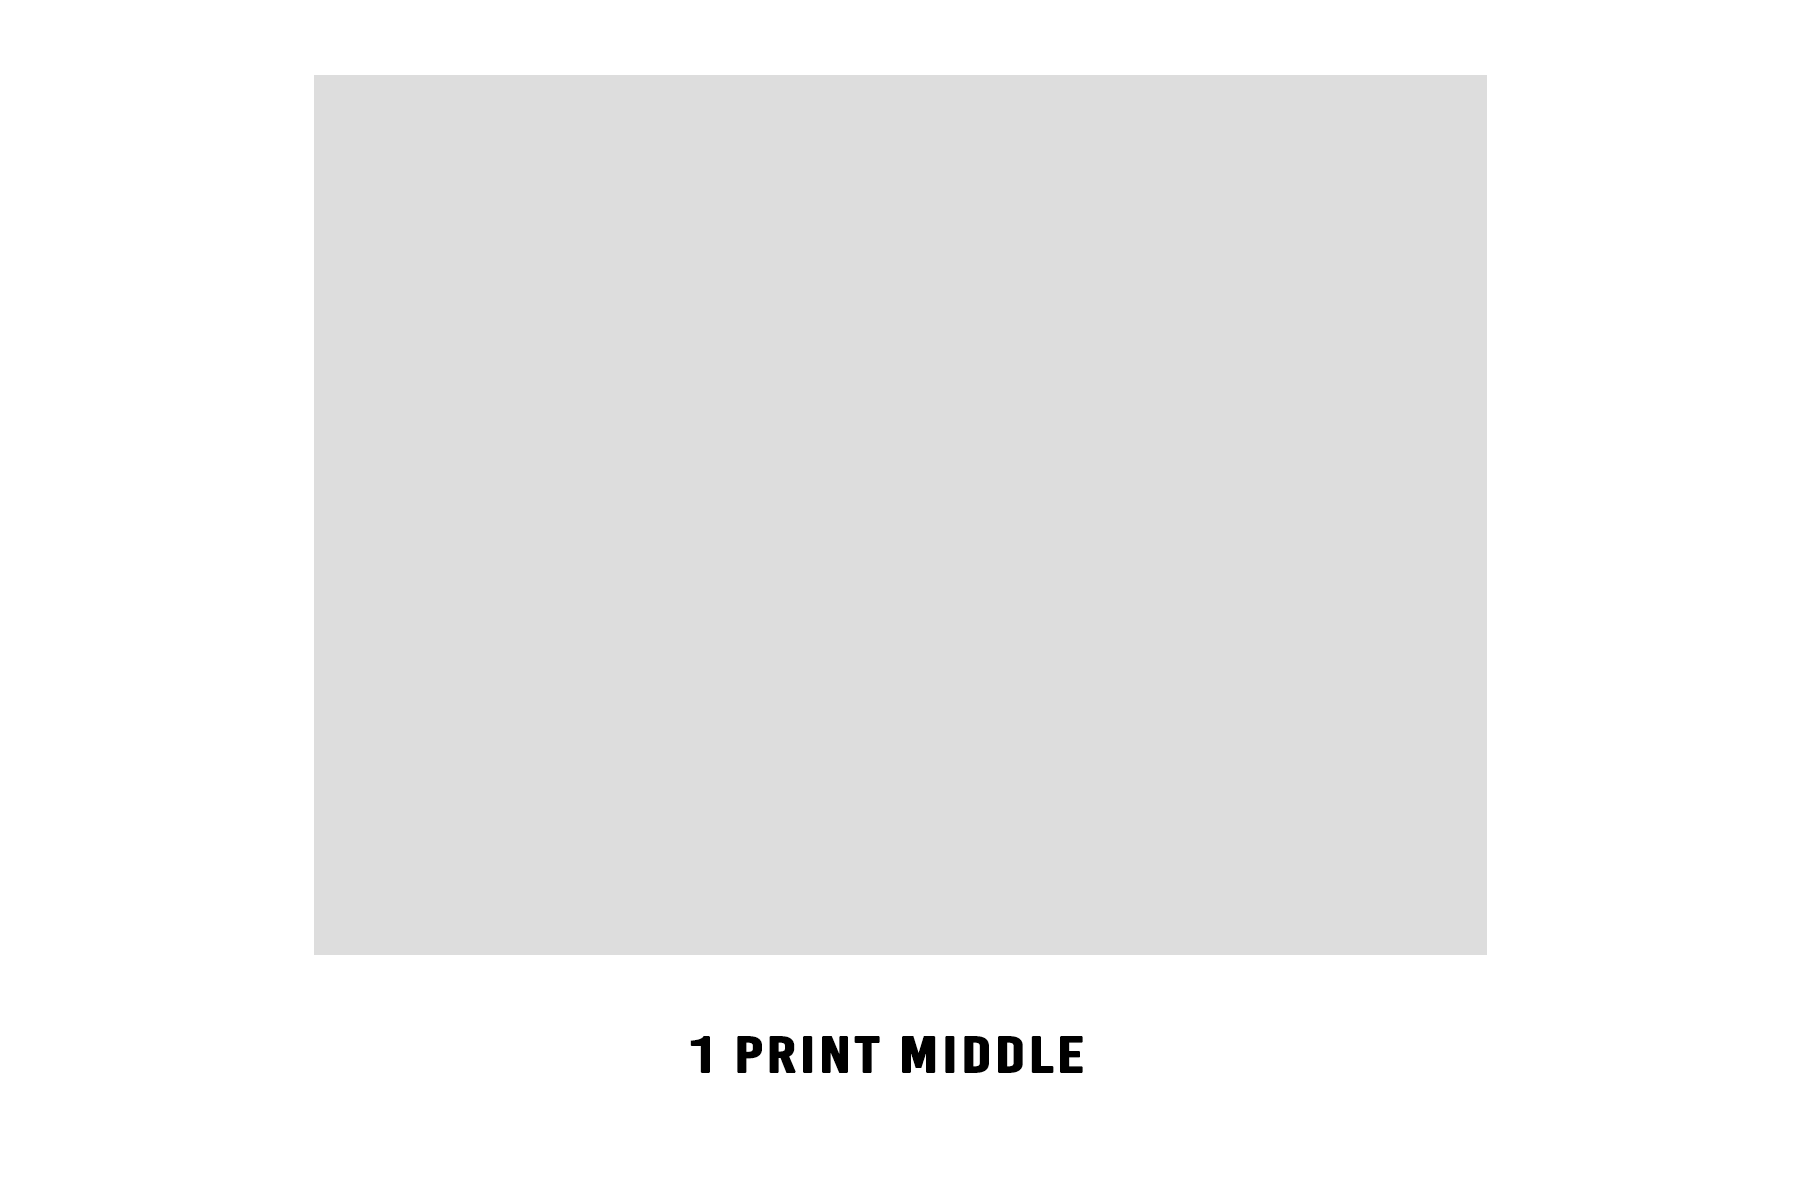 1-print-middle